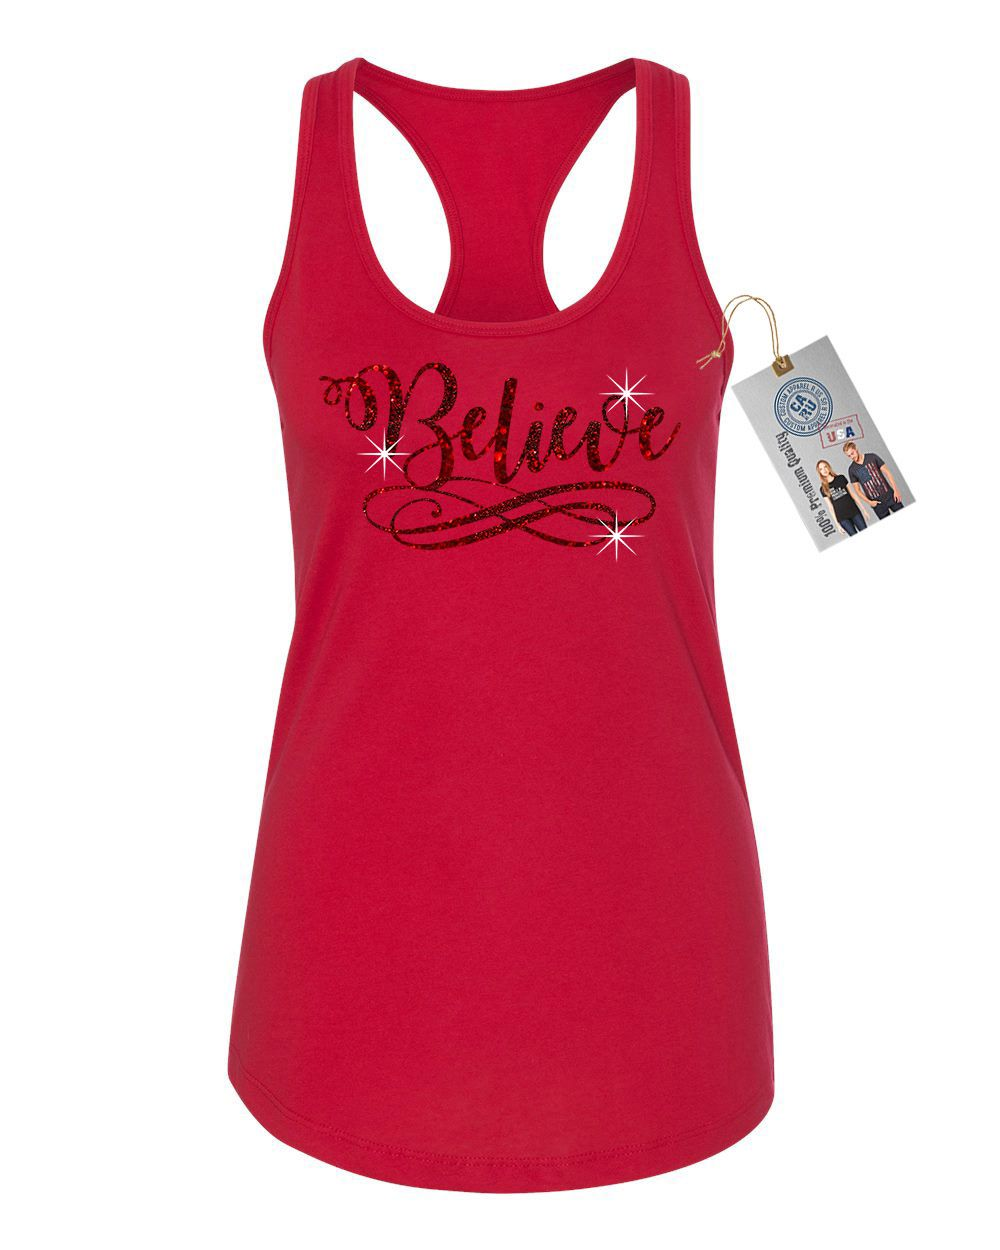 Believe Red Sparkle Glitter Christmas Womens Racerback Tank Top Red 2XL